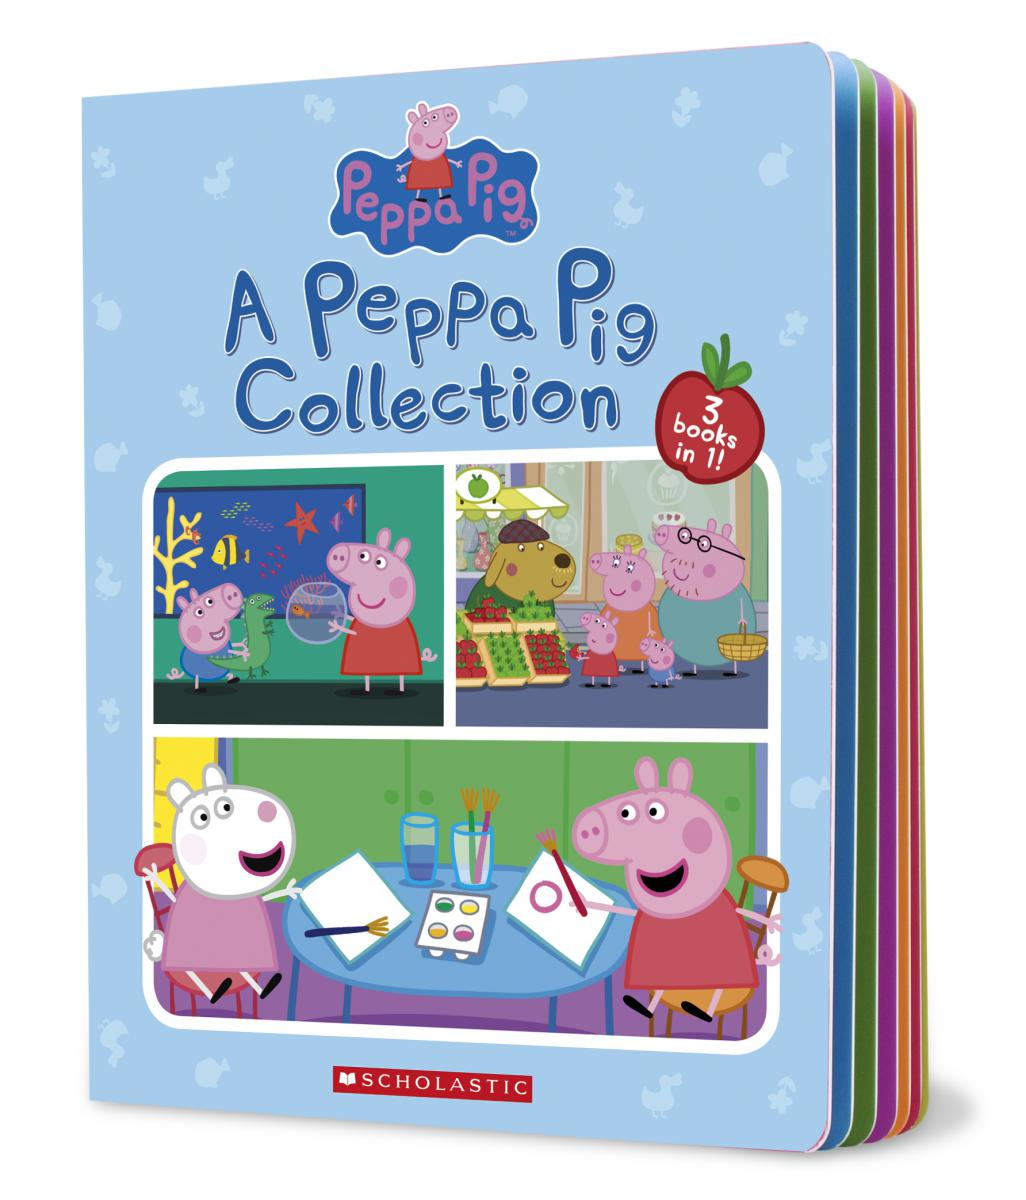 Peppa Pig: A Peppa Pig Collection